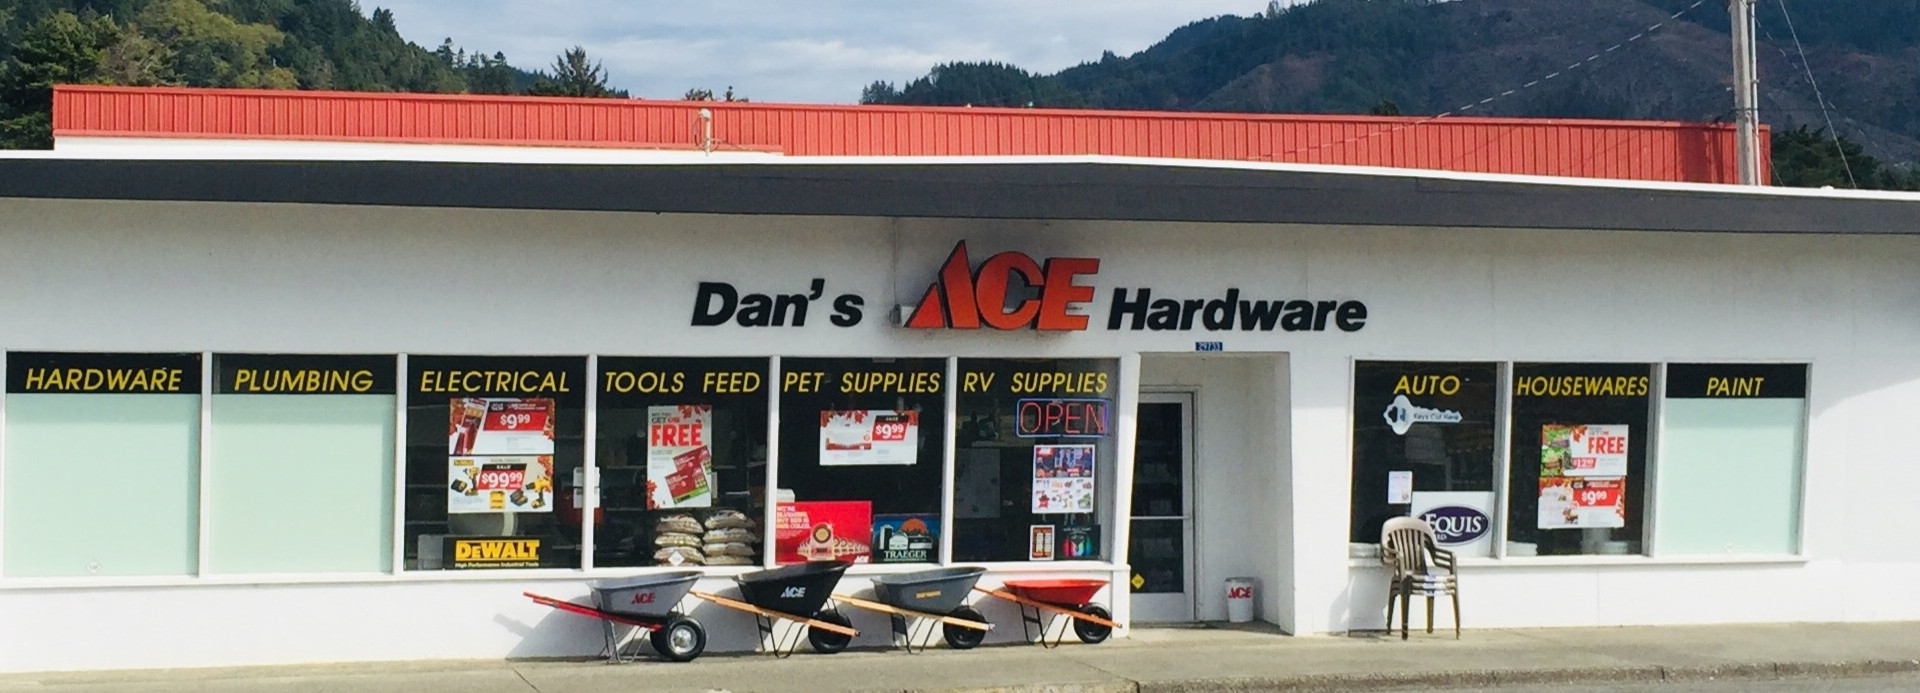 Dan's Ace Hardware After Project Completion